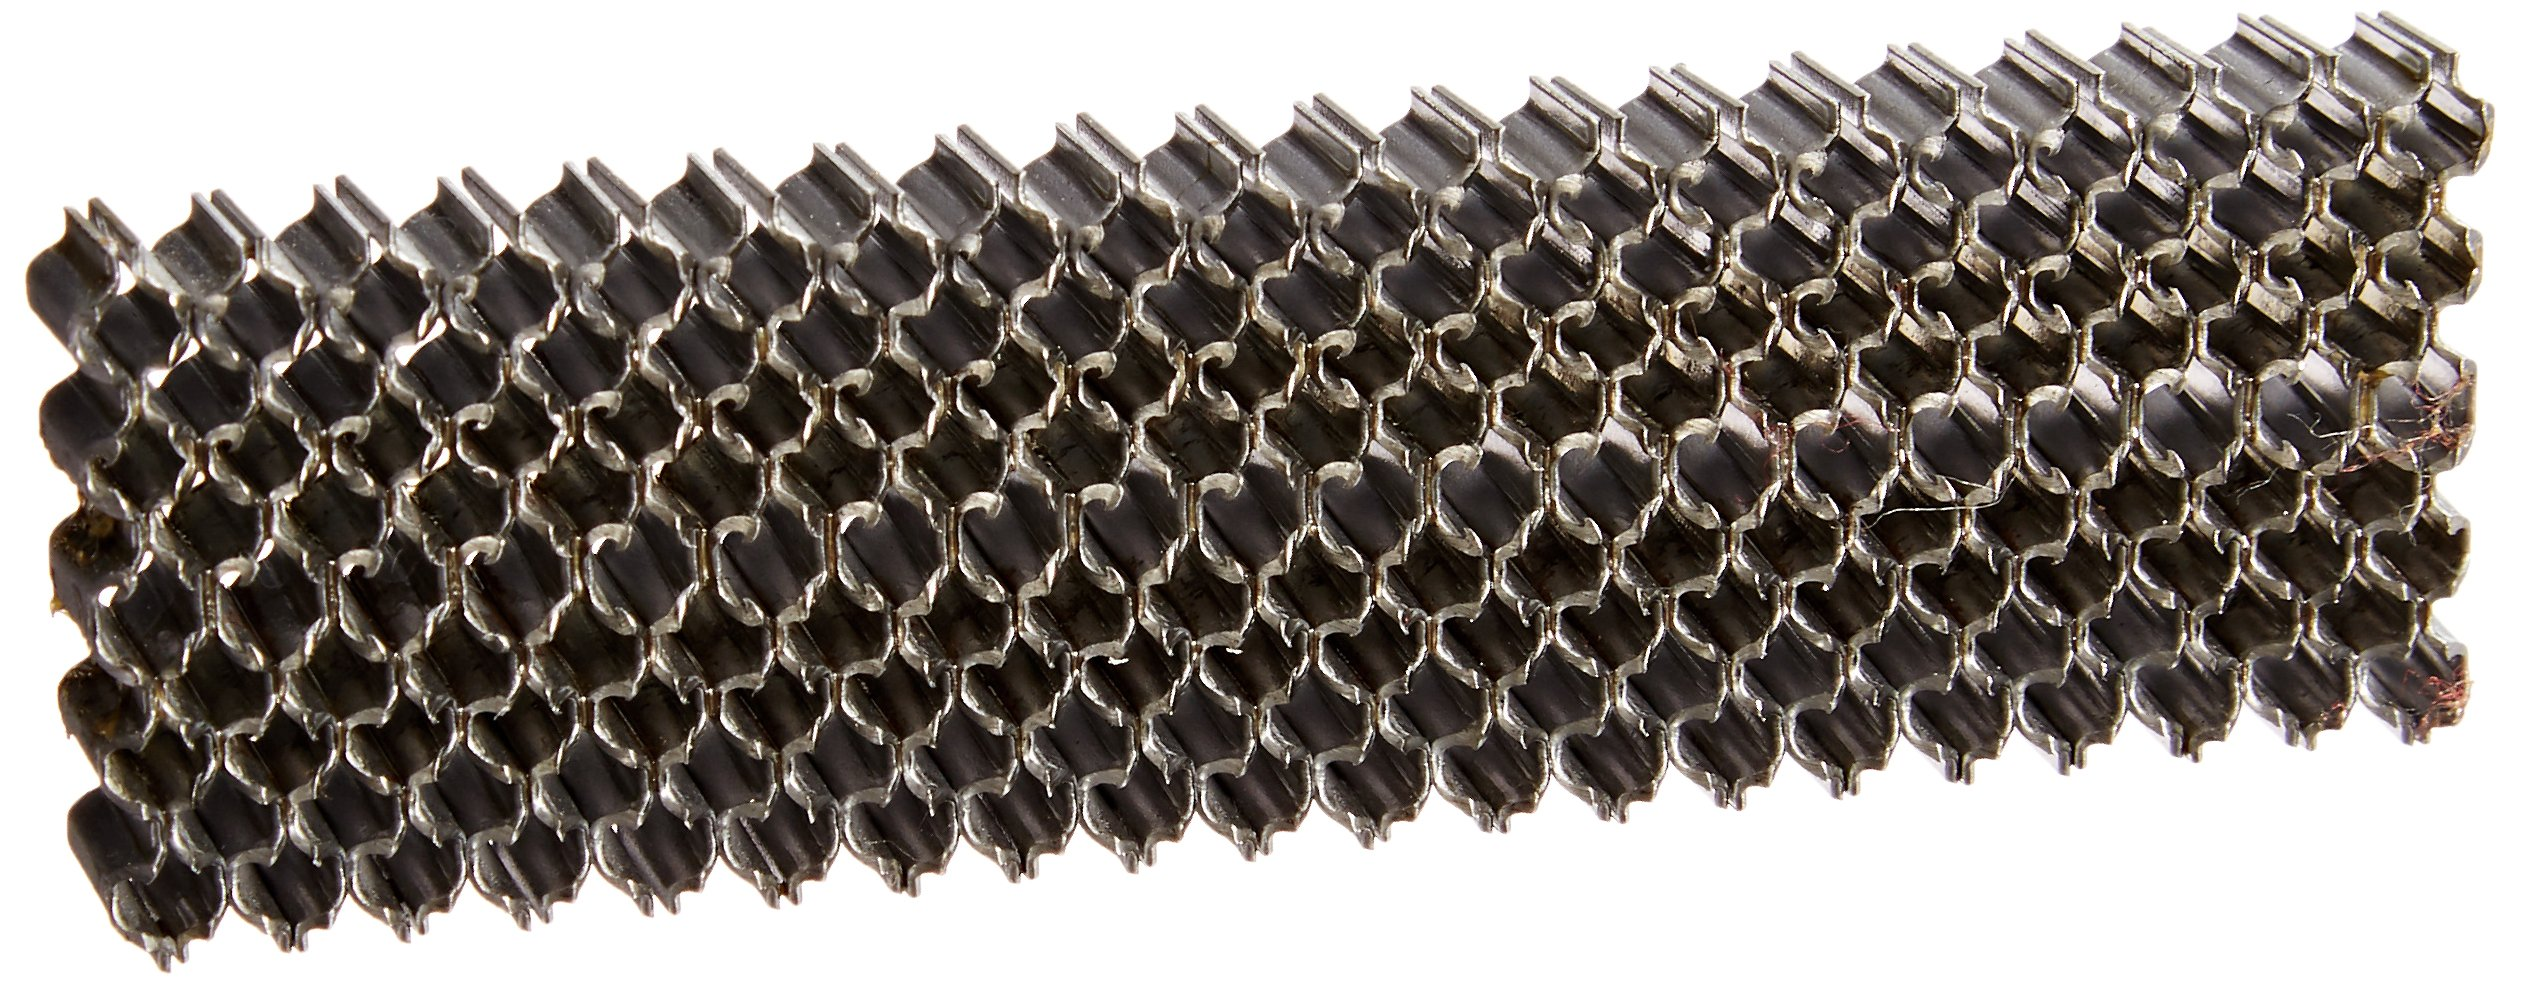 Grex Power Tools GCF25-10 25-Gauge 1-Inch Crown 3/8-InchLength Bright Corrugated Staples